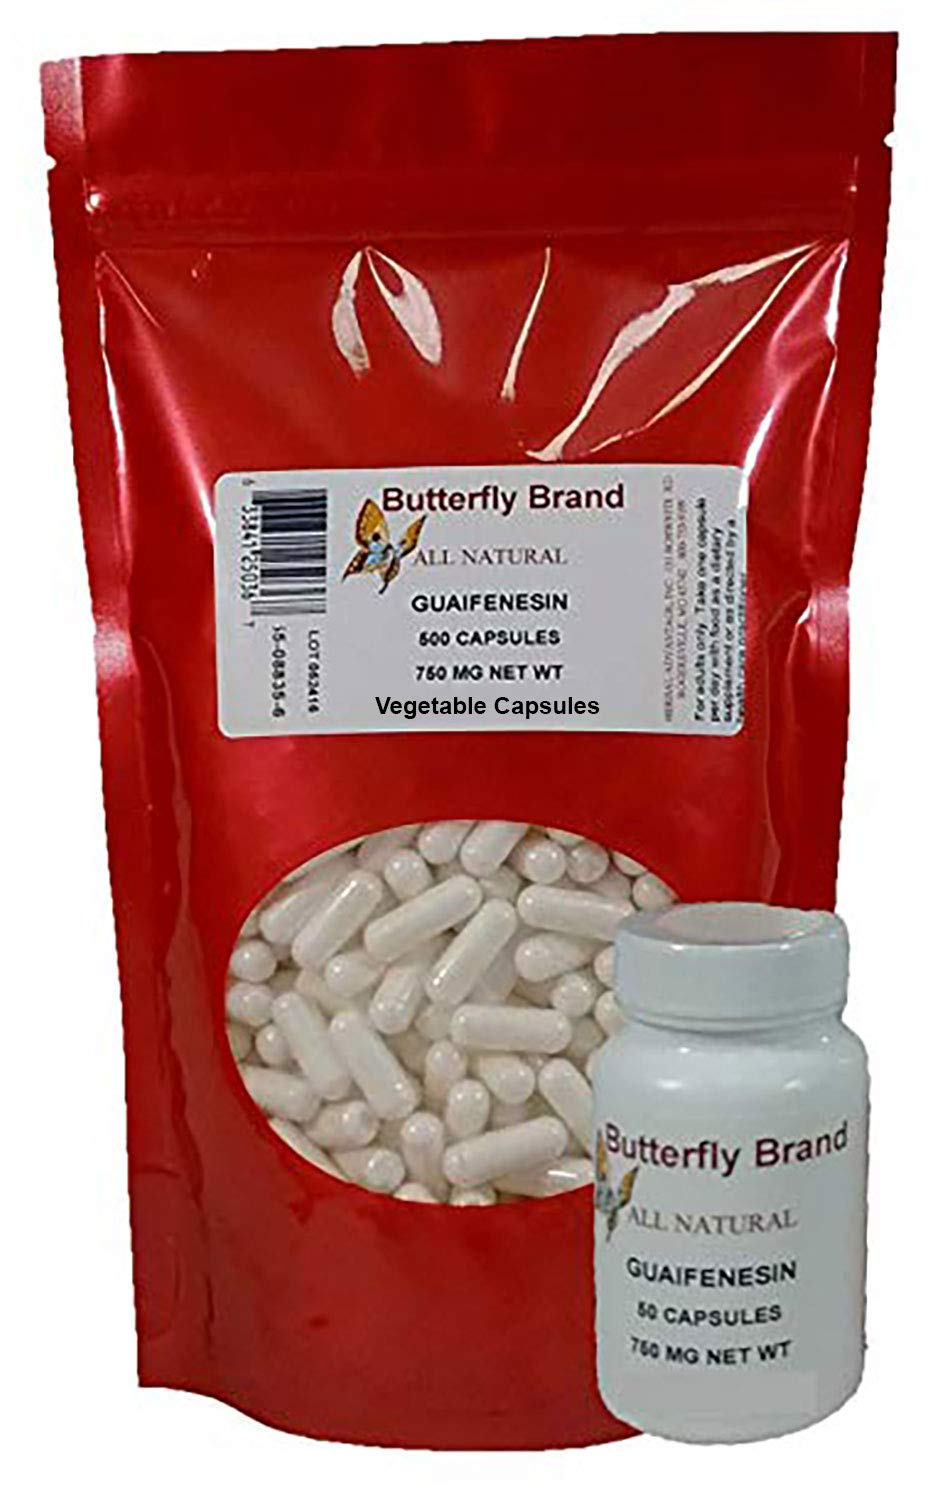 550 Guaifenesin 750mg Vegetable Capsules 1 Bag of 500 and Carry Around Bottle of 50